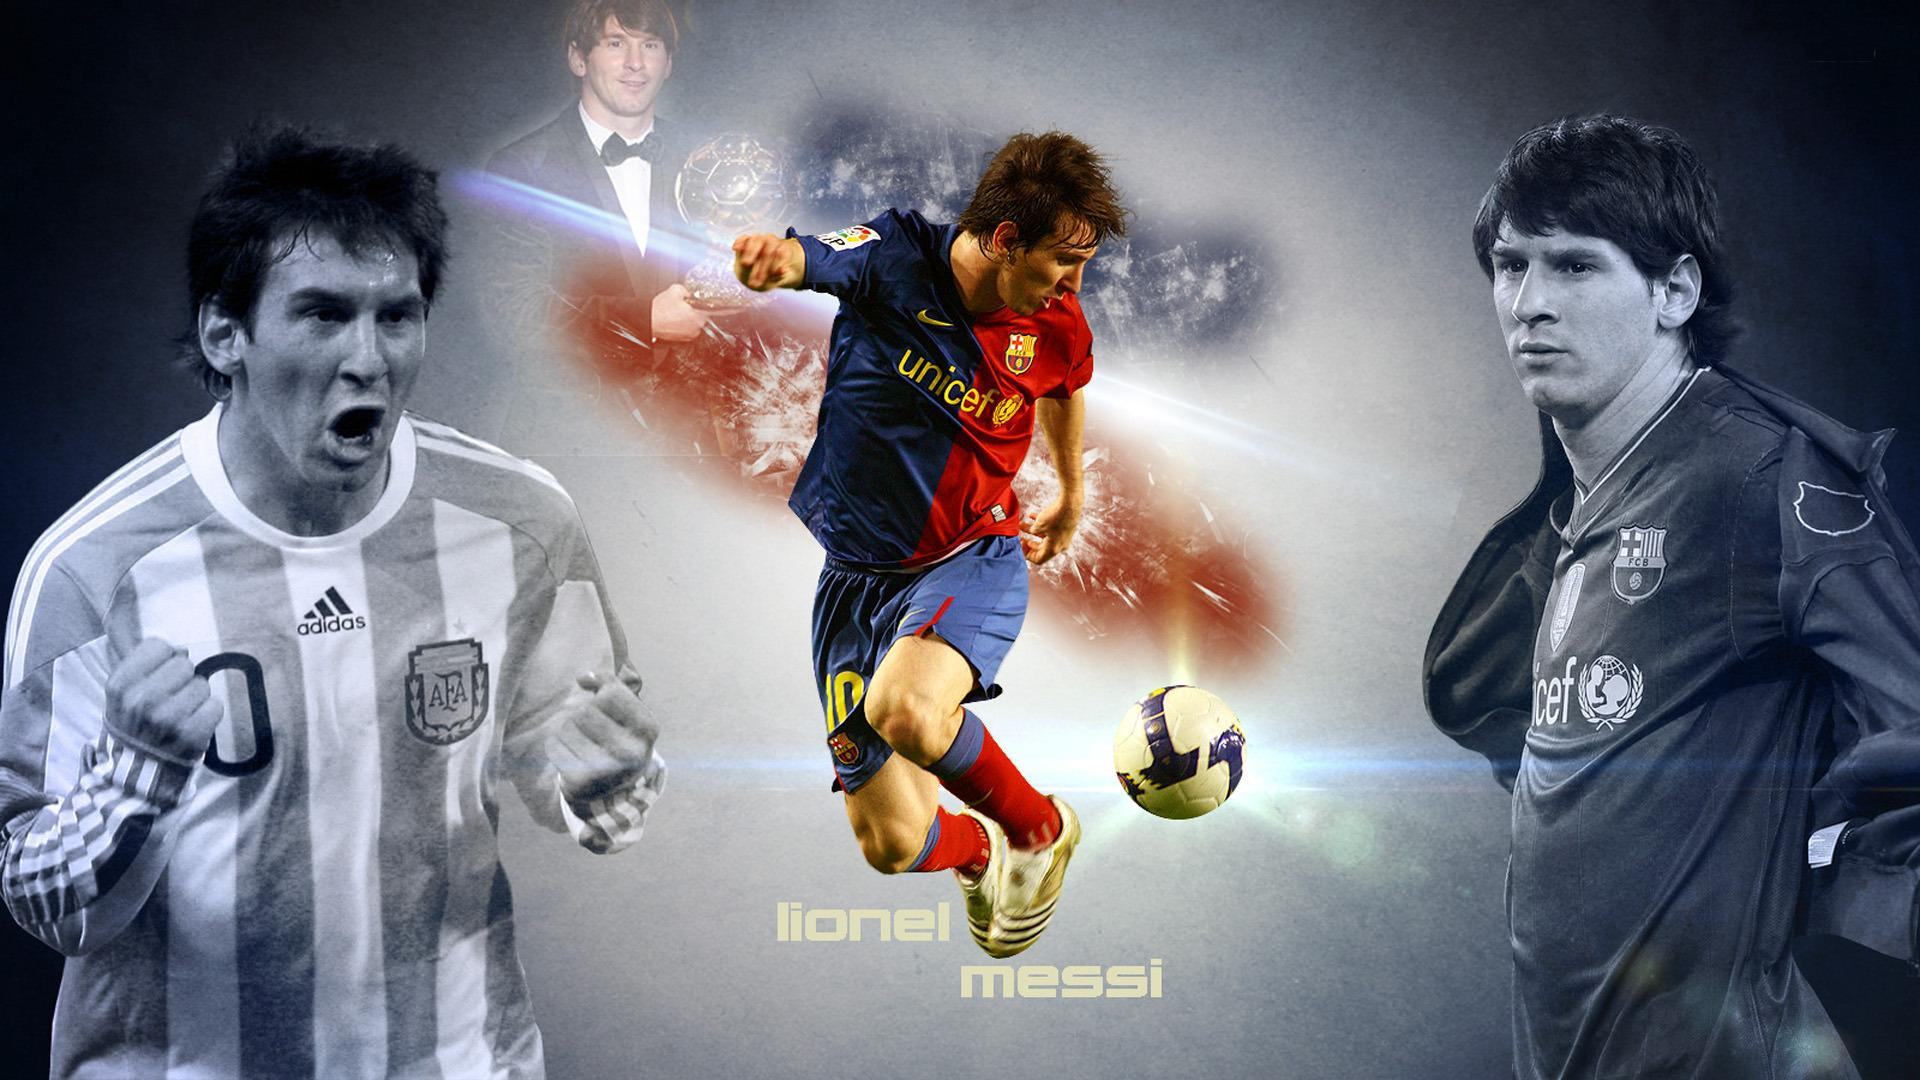 Messi Wallpaper amazing